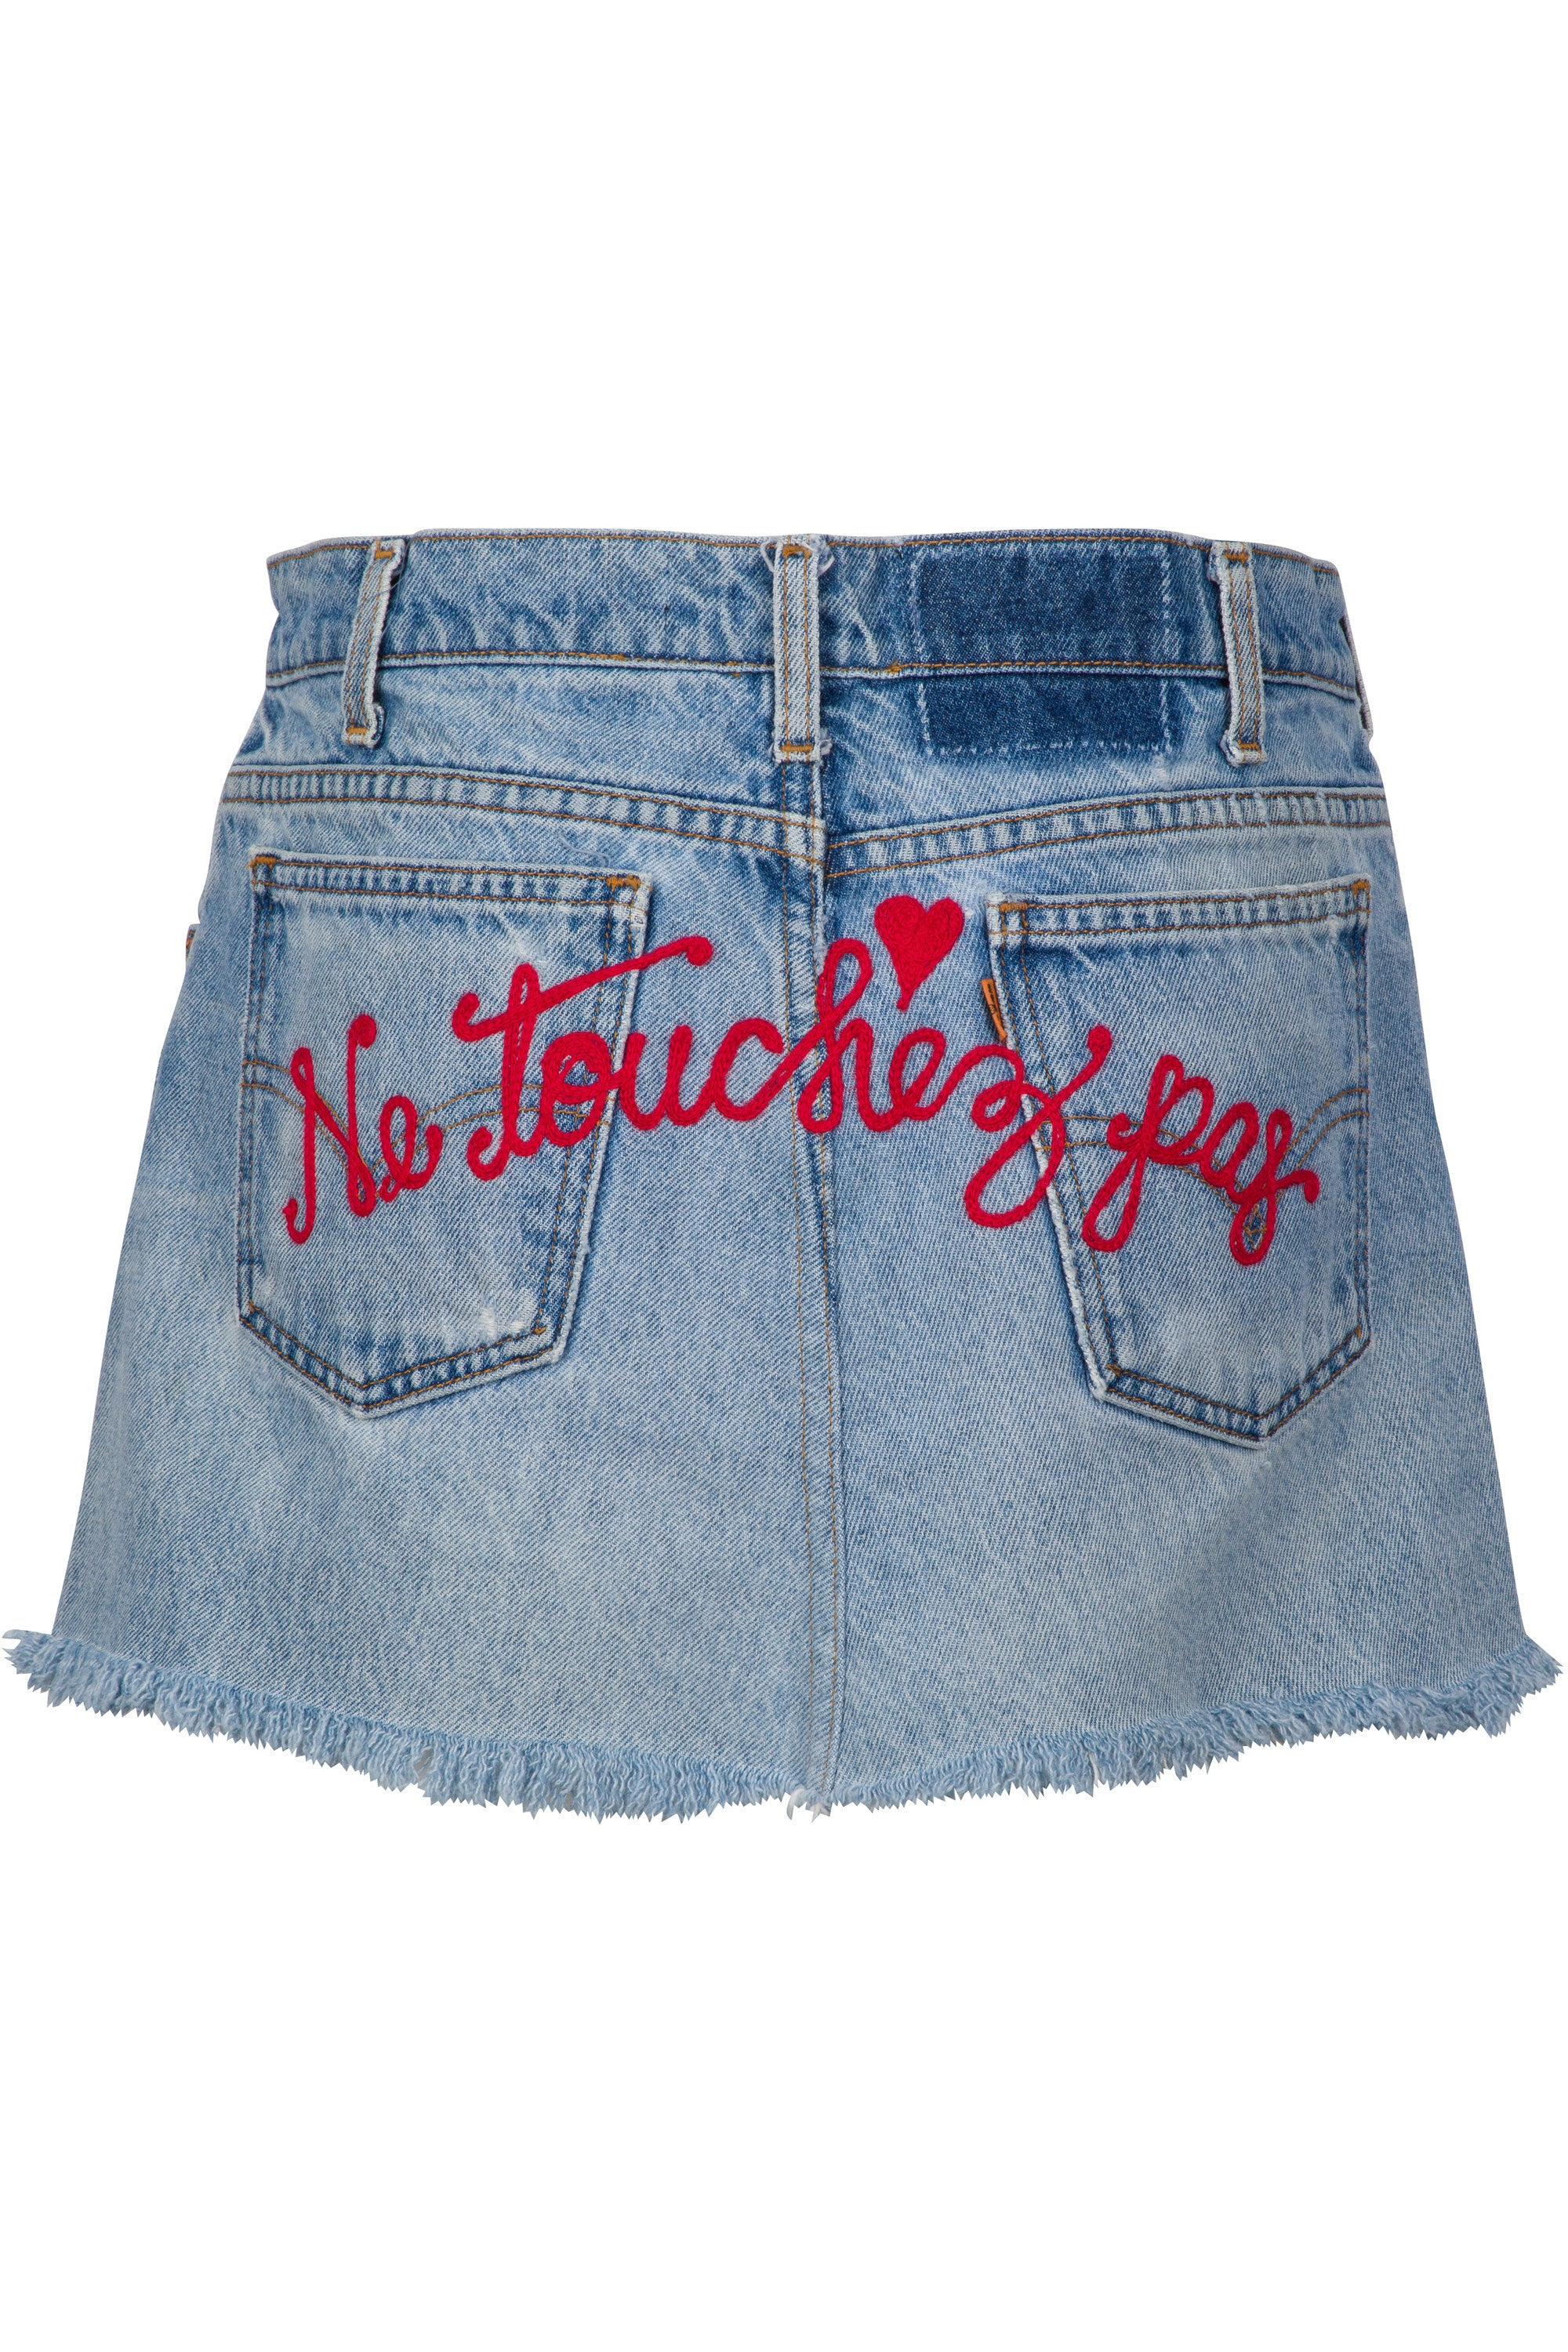 DONT TOUCH DENIM SKIRT by Kendall and Kylie